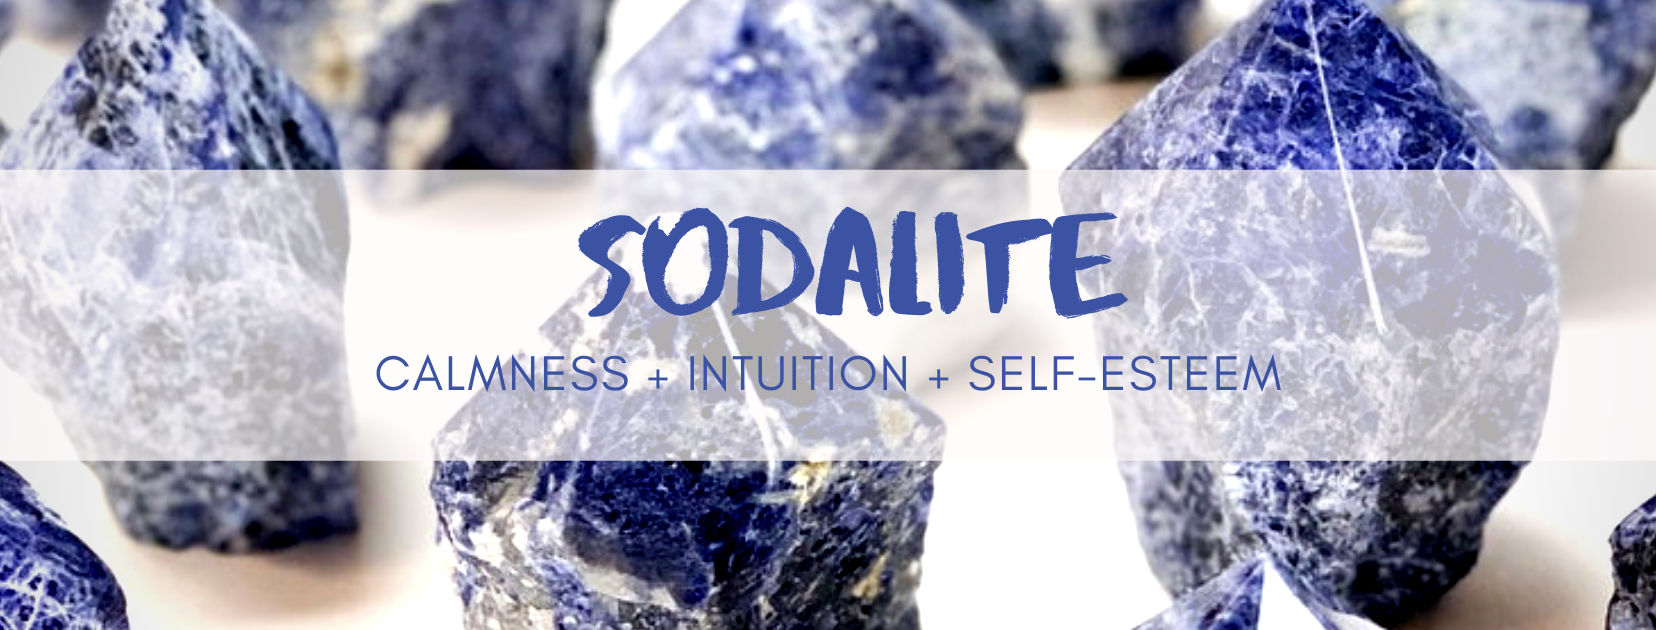 Sodalite Healing Properties | Sodalite Meaning | Benefits Of Sodalite - Magic Crystals